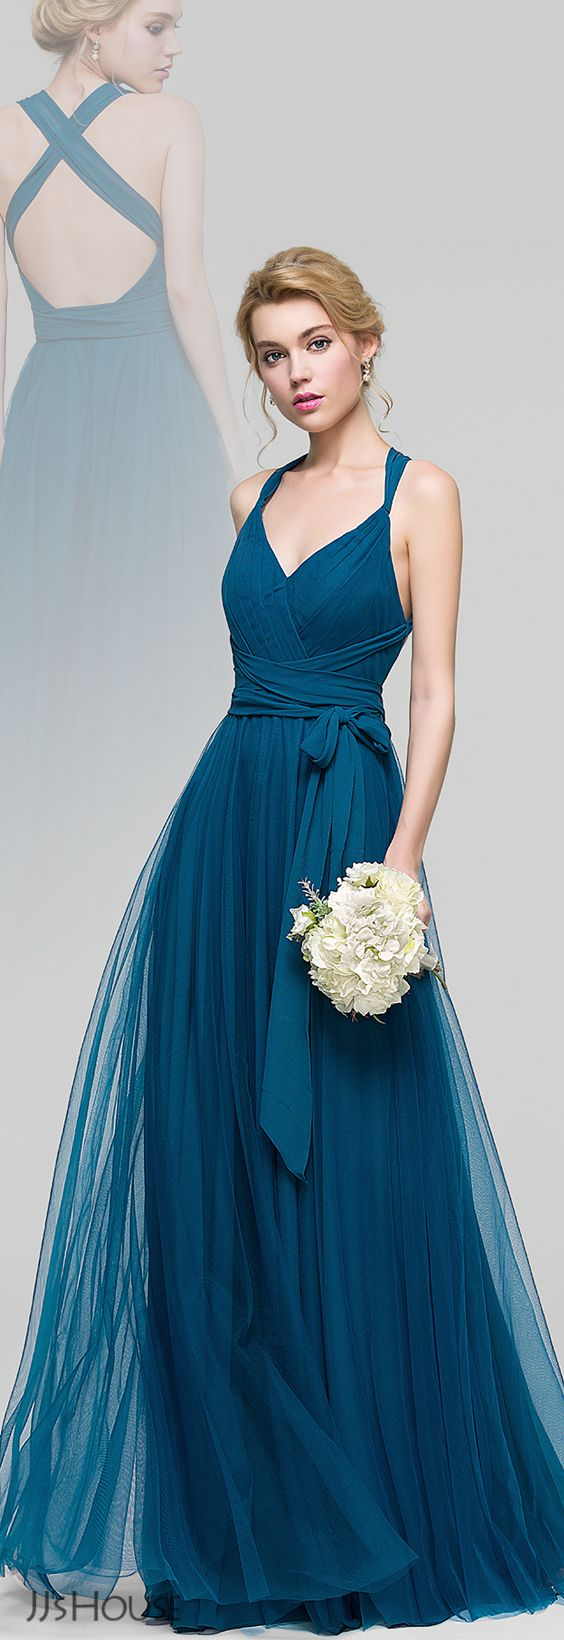 Jjshouse prom wedding pinterest prom gowns and clothes